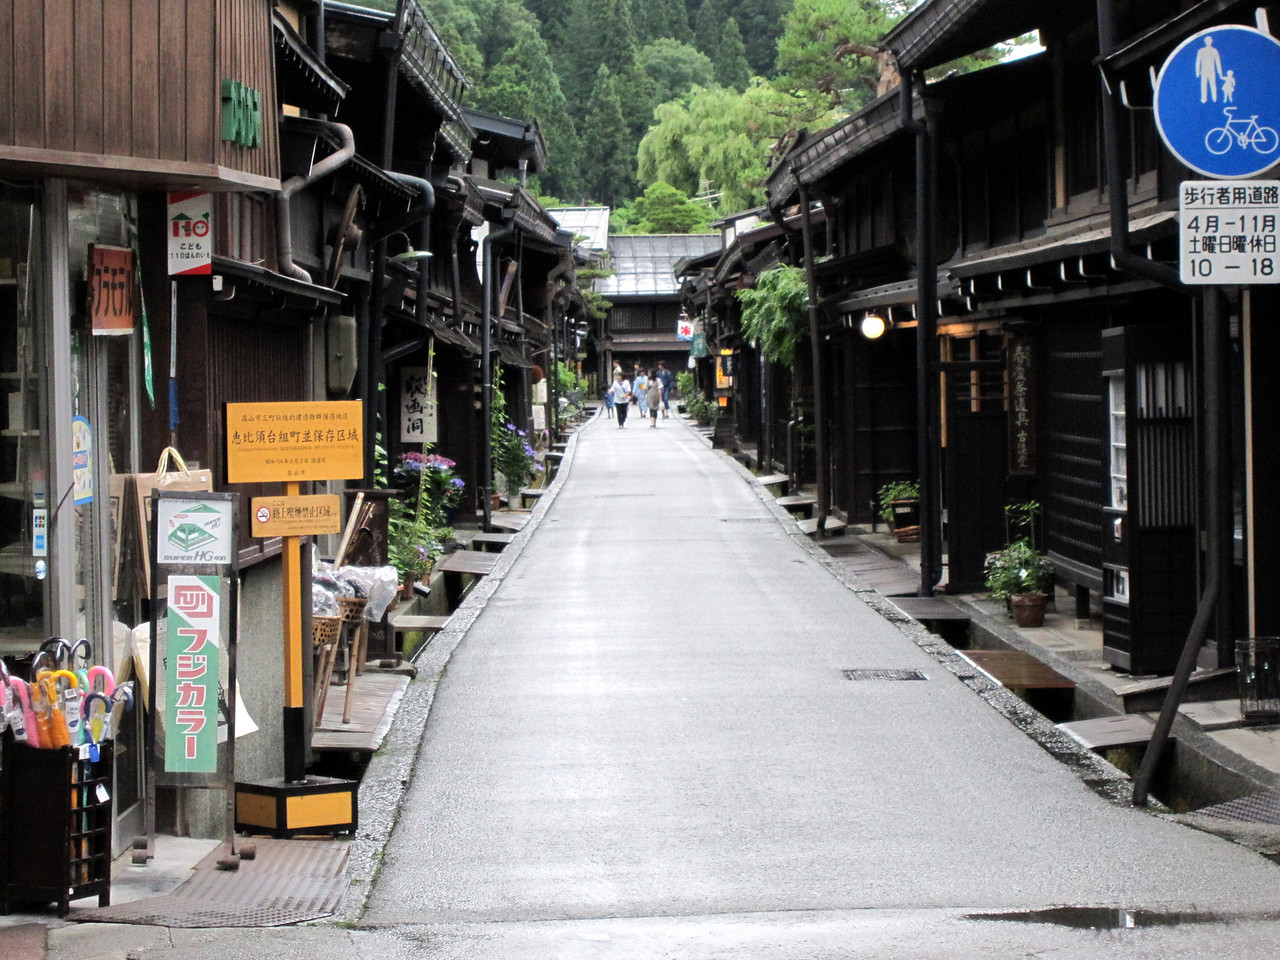 Takayama - Old Town District